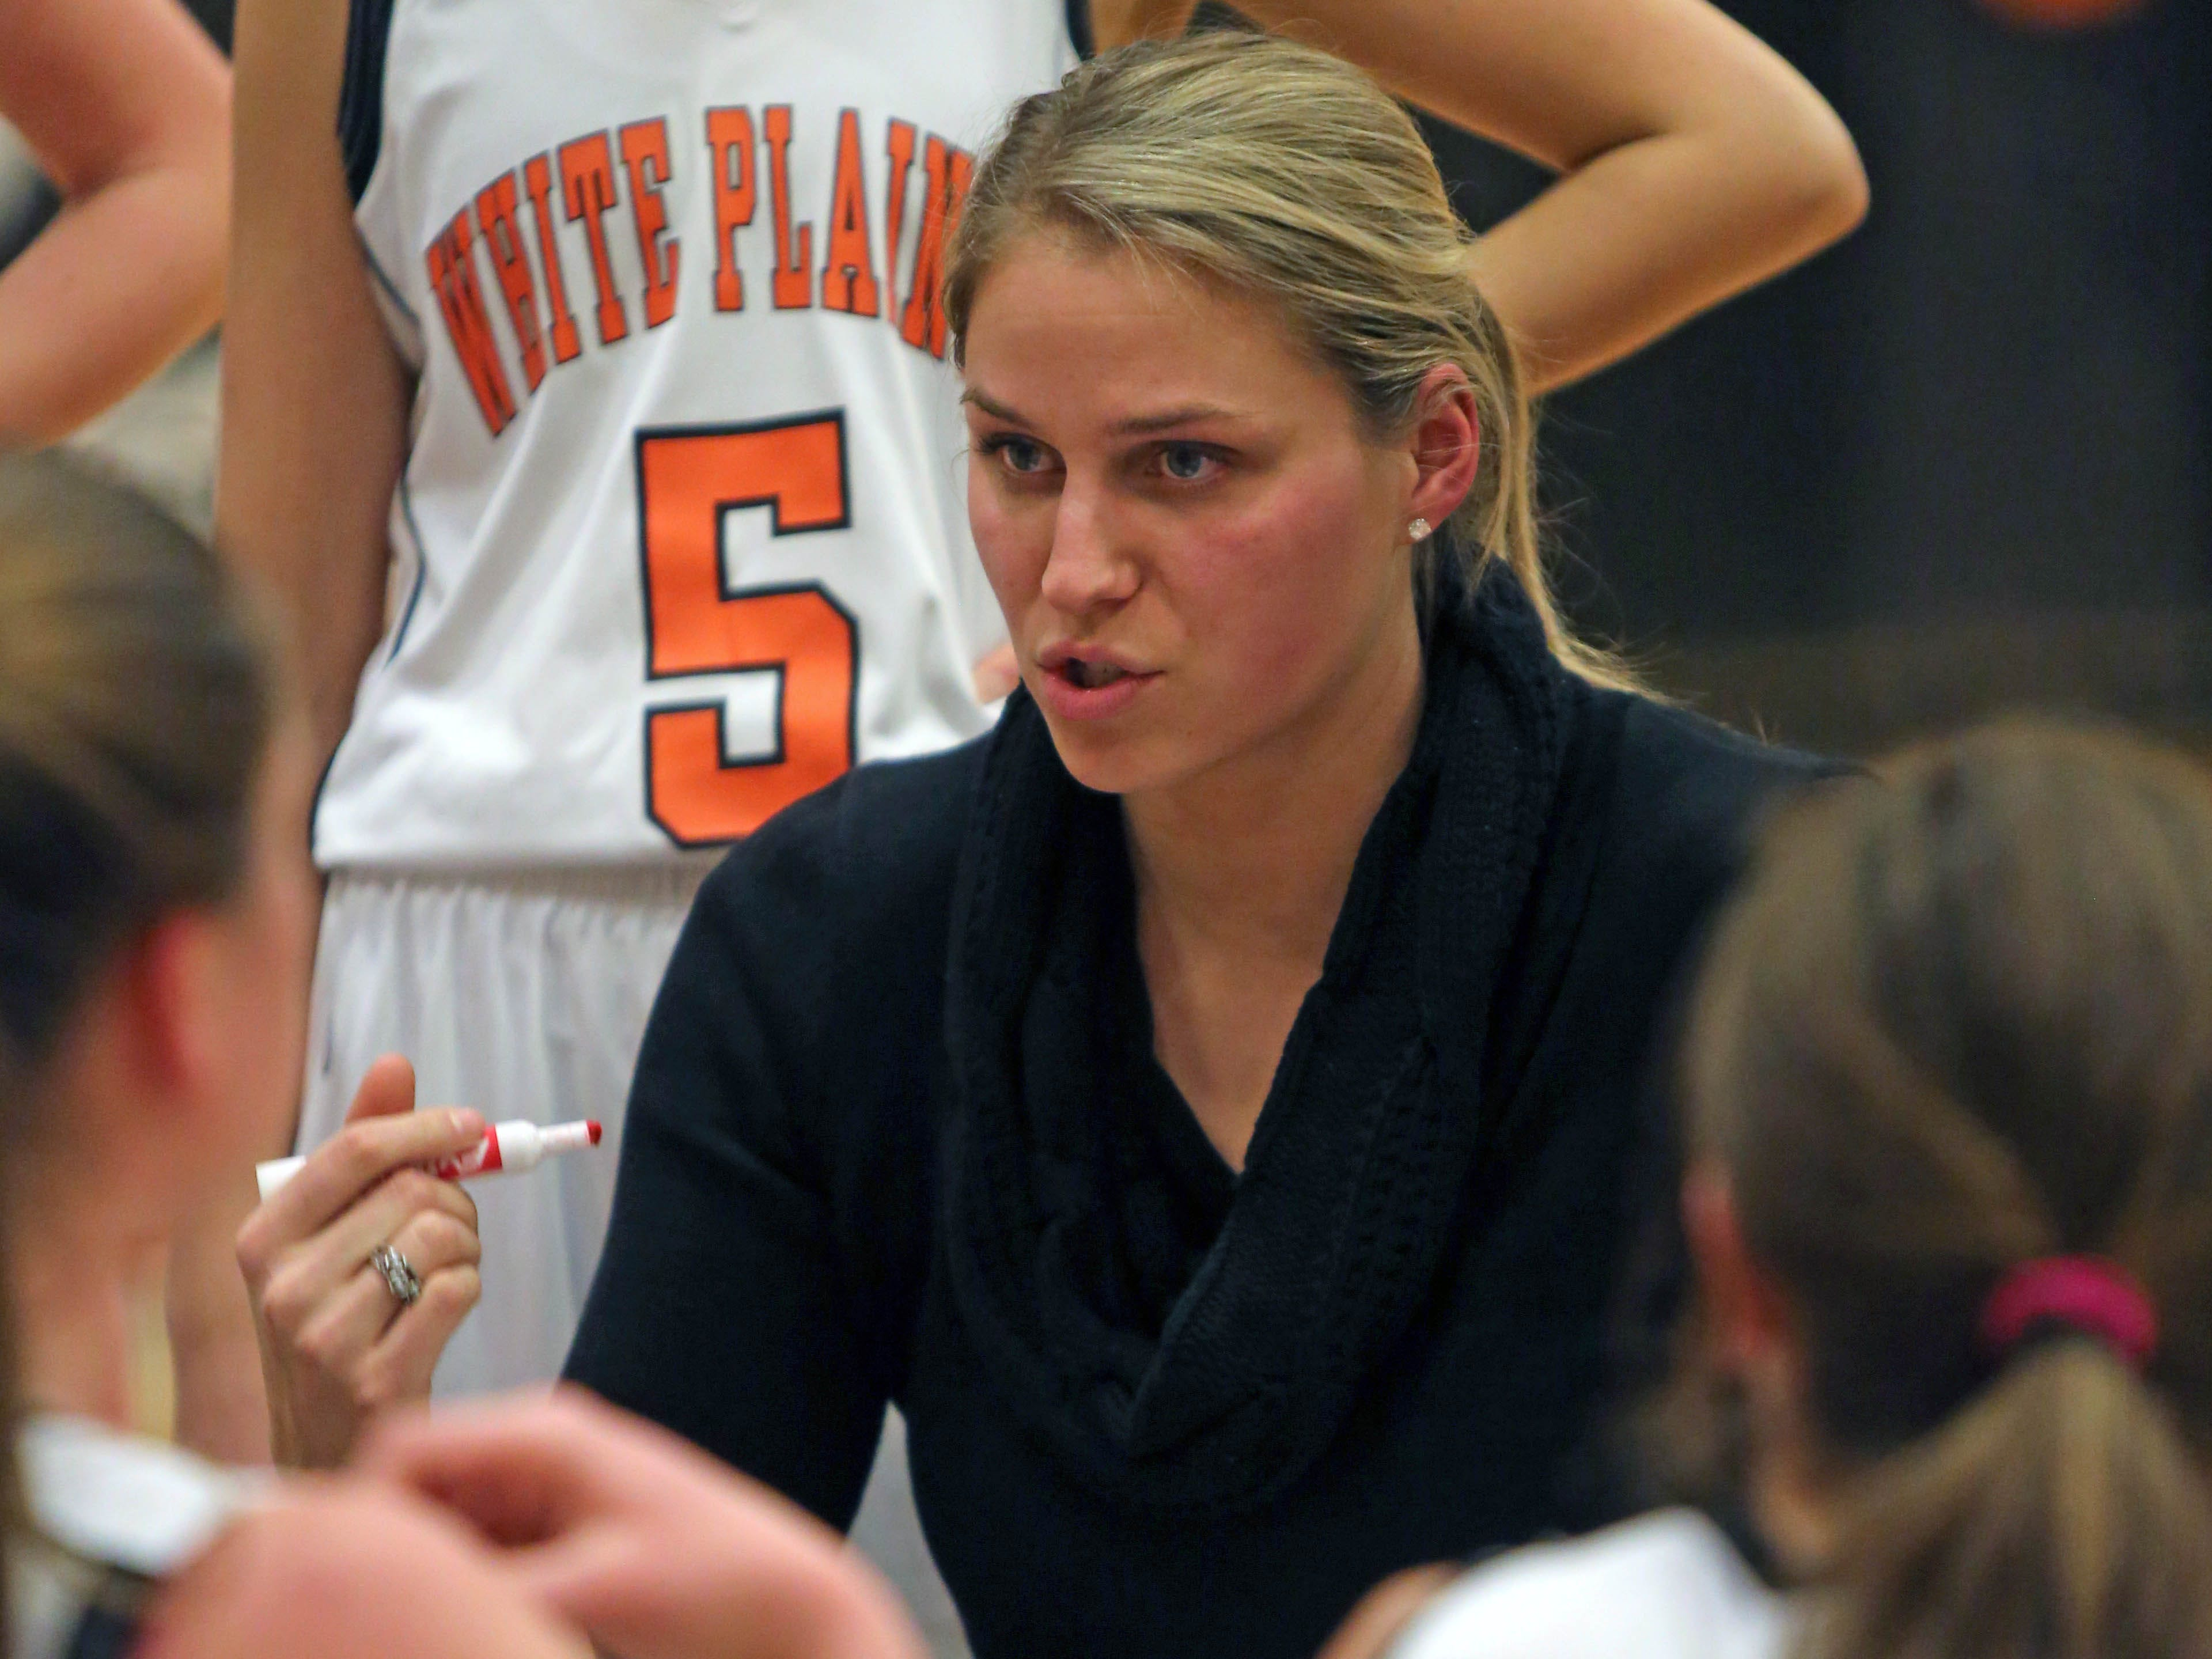 White Plains coach Tara Flaherty talks to her team during a time out during girls basketball game against Scarsdale at White Plains High School on Jan. 14, 2015. Scarsdale defeated White Plains 49-30.